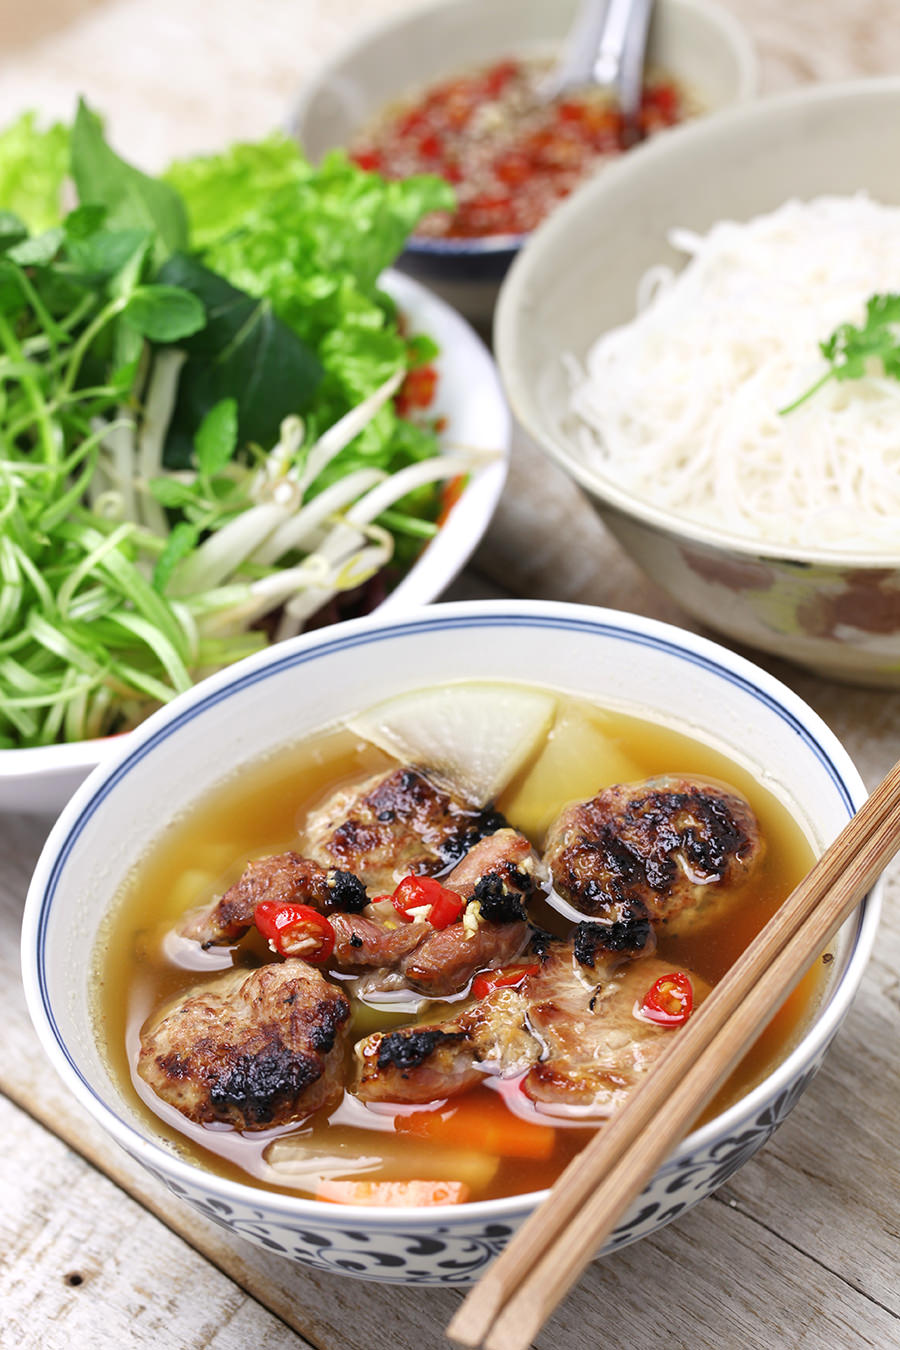 Hanoi Style Vermicelli with Grilled Pork